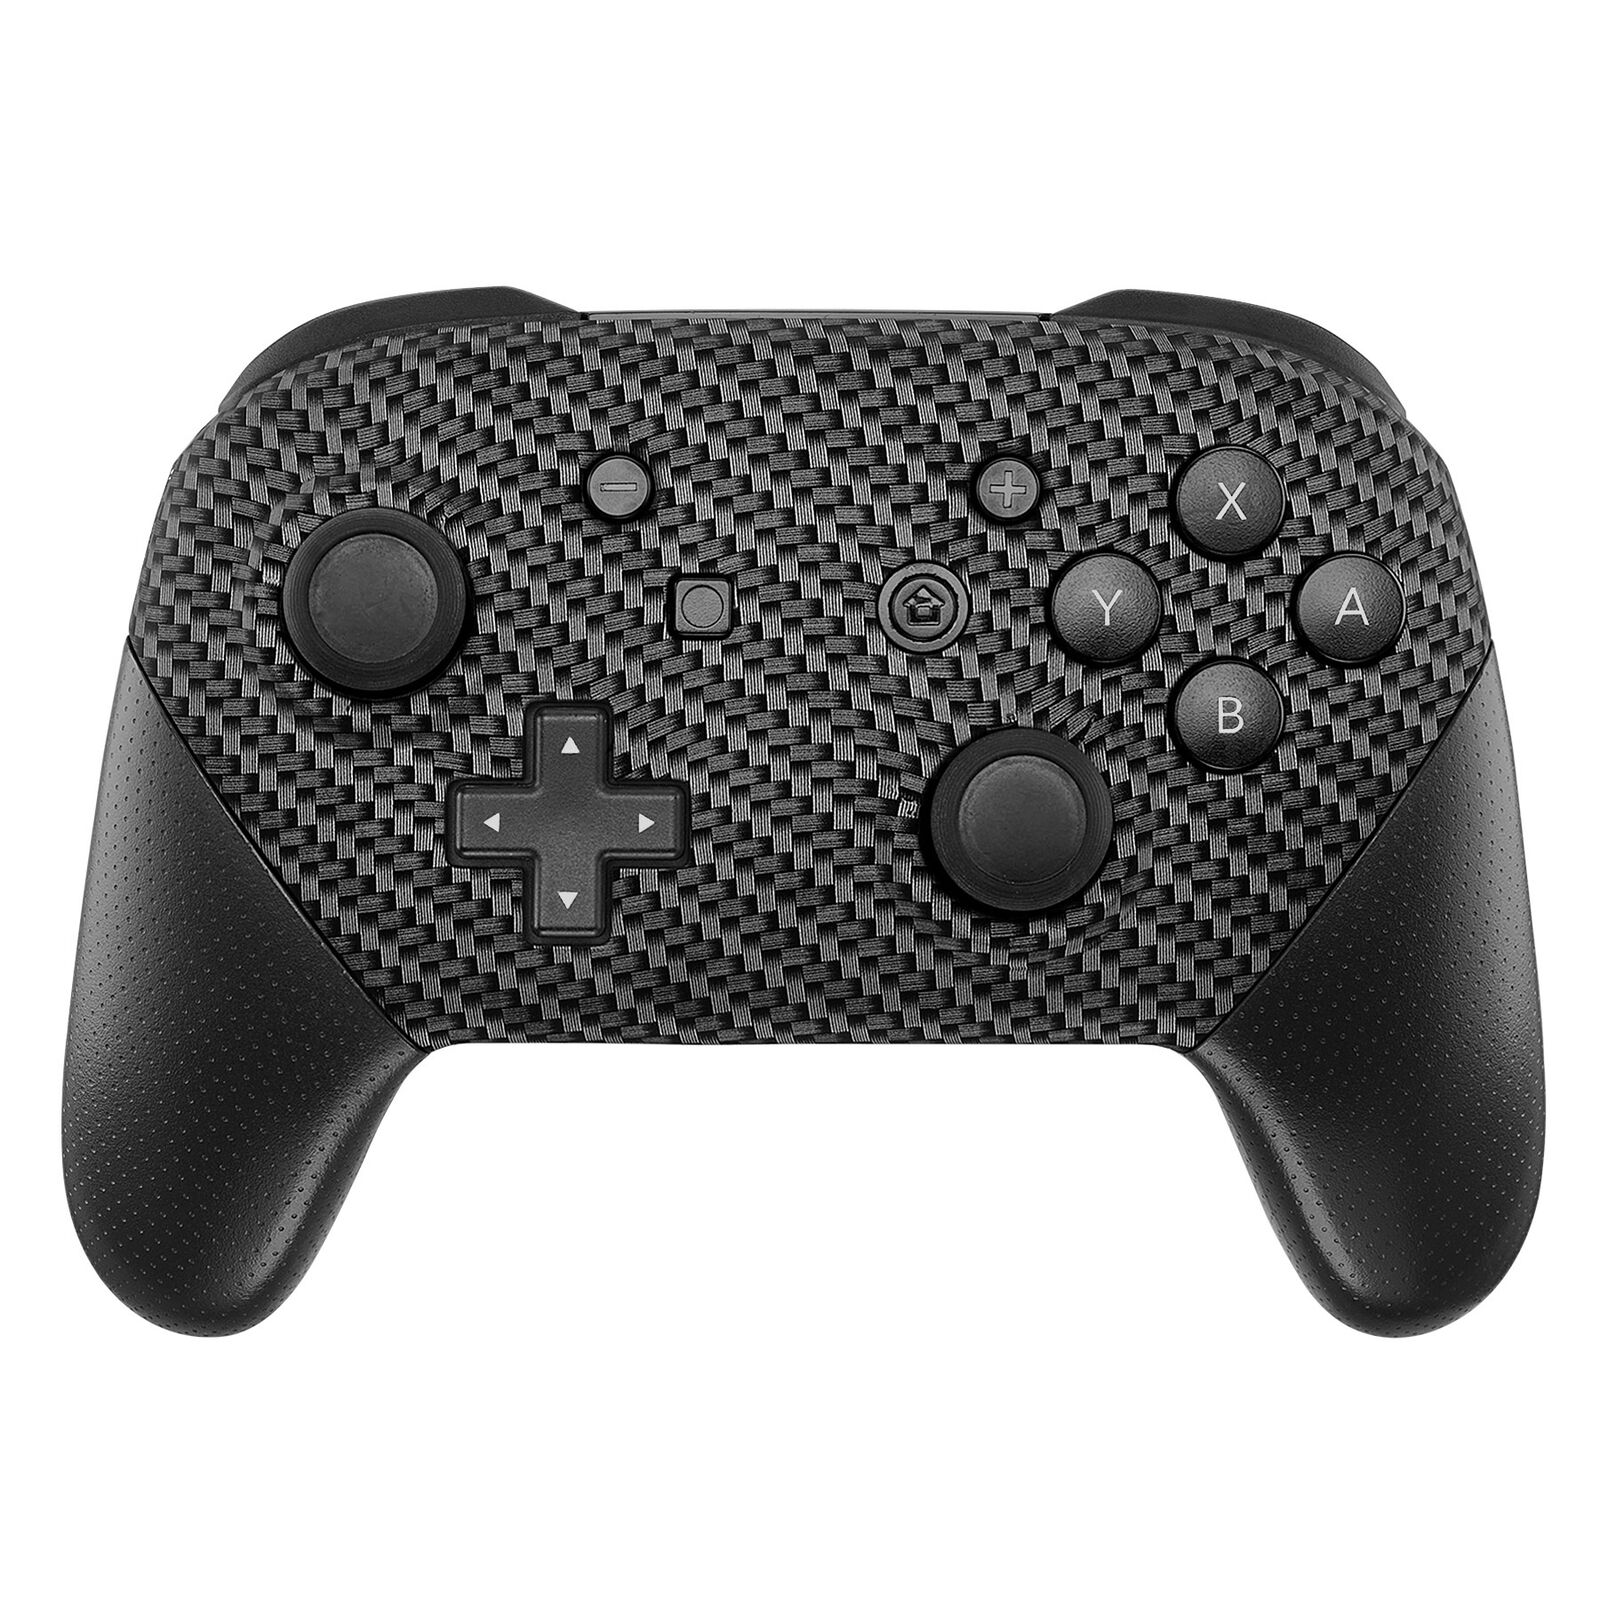 Nintendo Switch Pro Controller Black and Carbon Fiber Faceplate